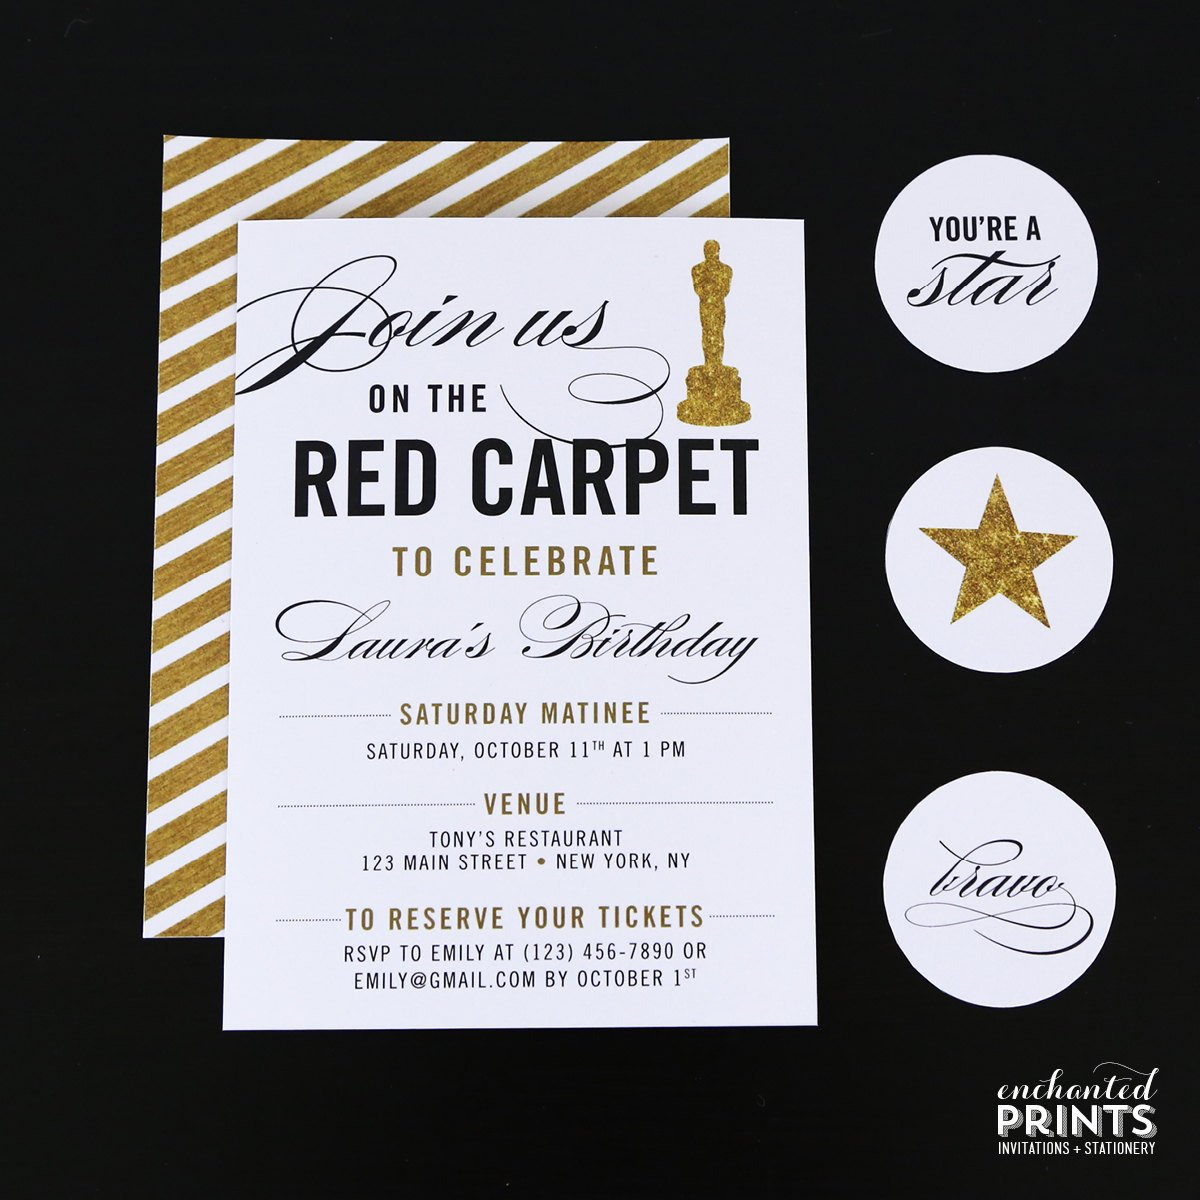 Red Carpet Invitation Template Luxury Red Carpet Party Invitation Red Carpet Birthday Red Carpet